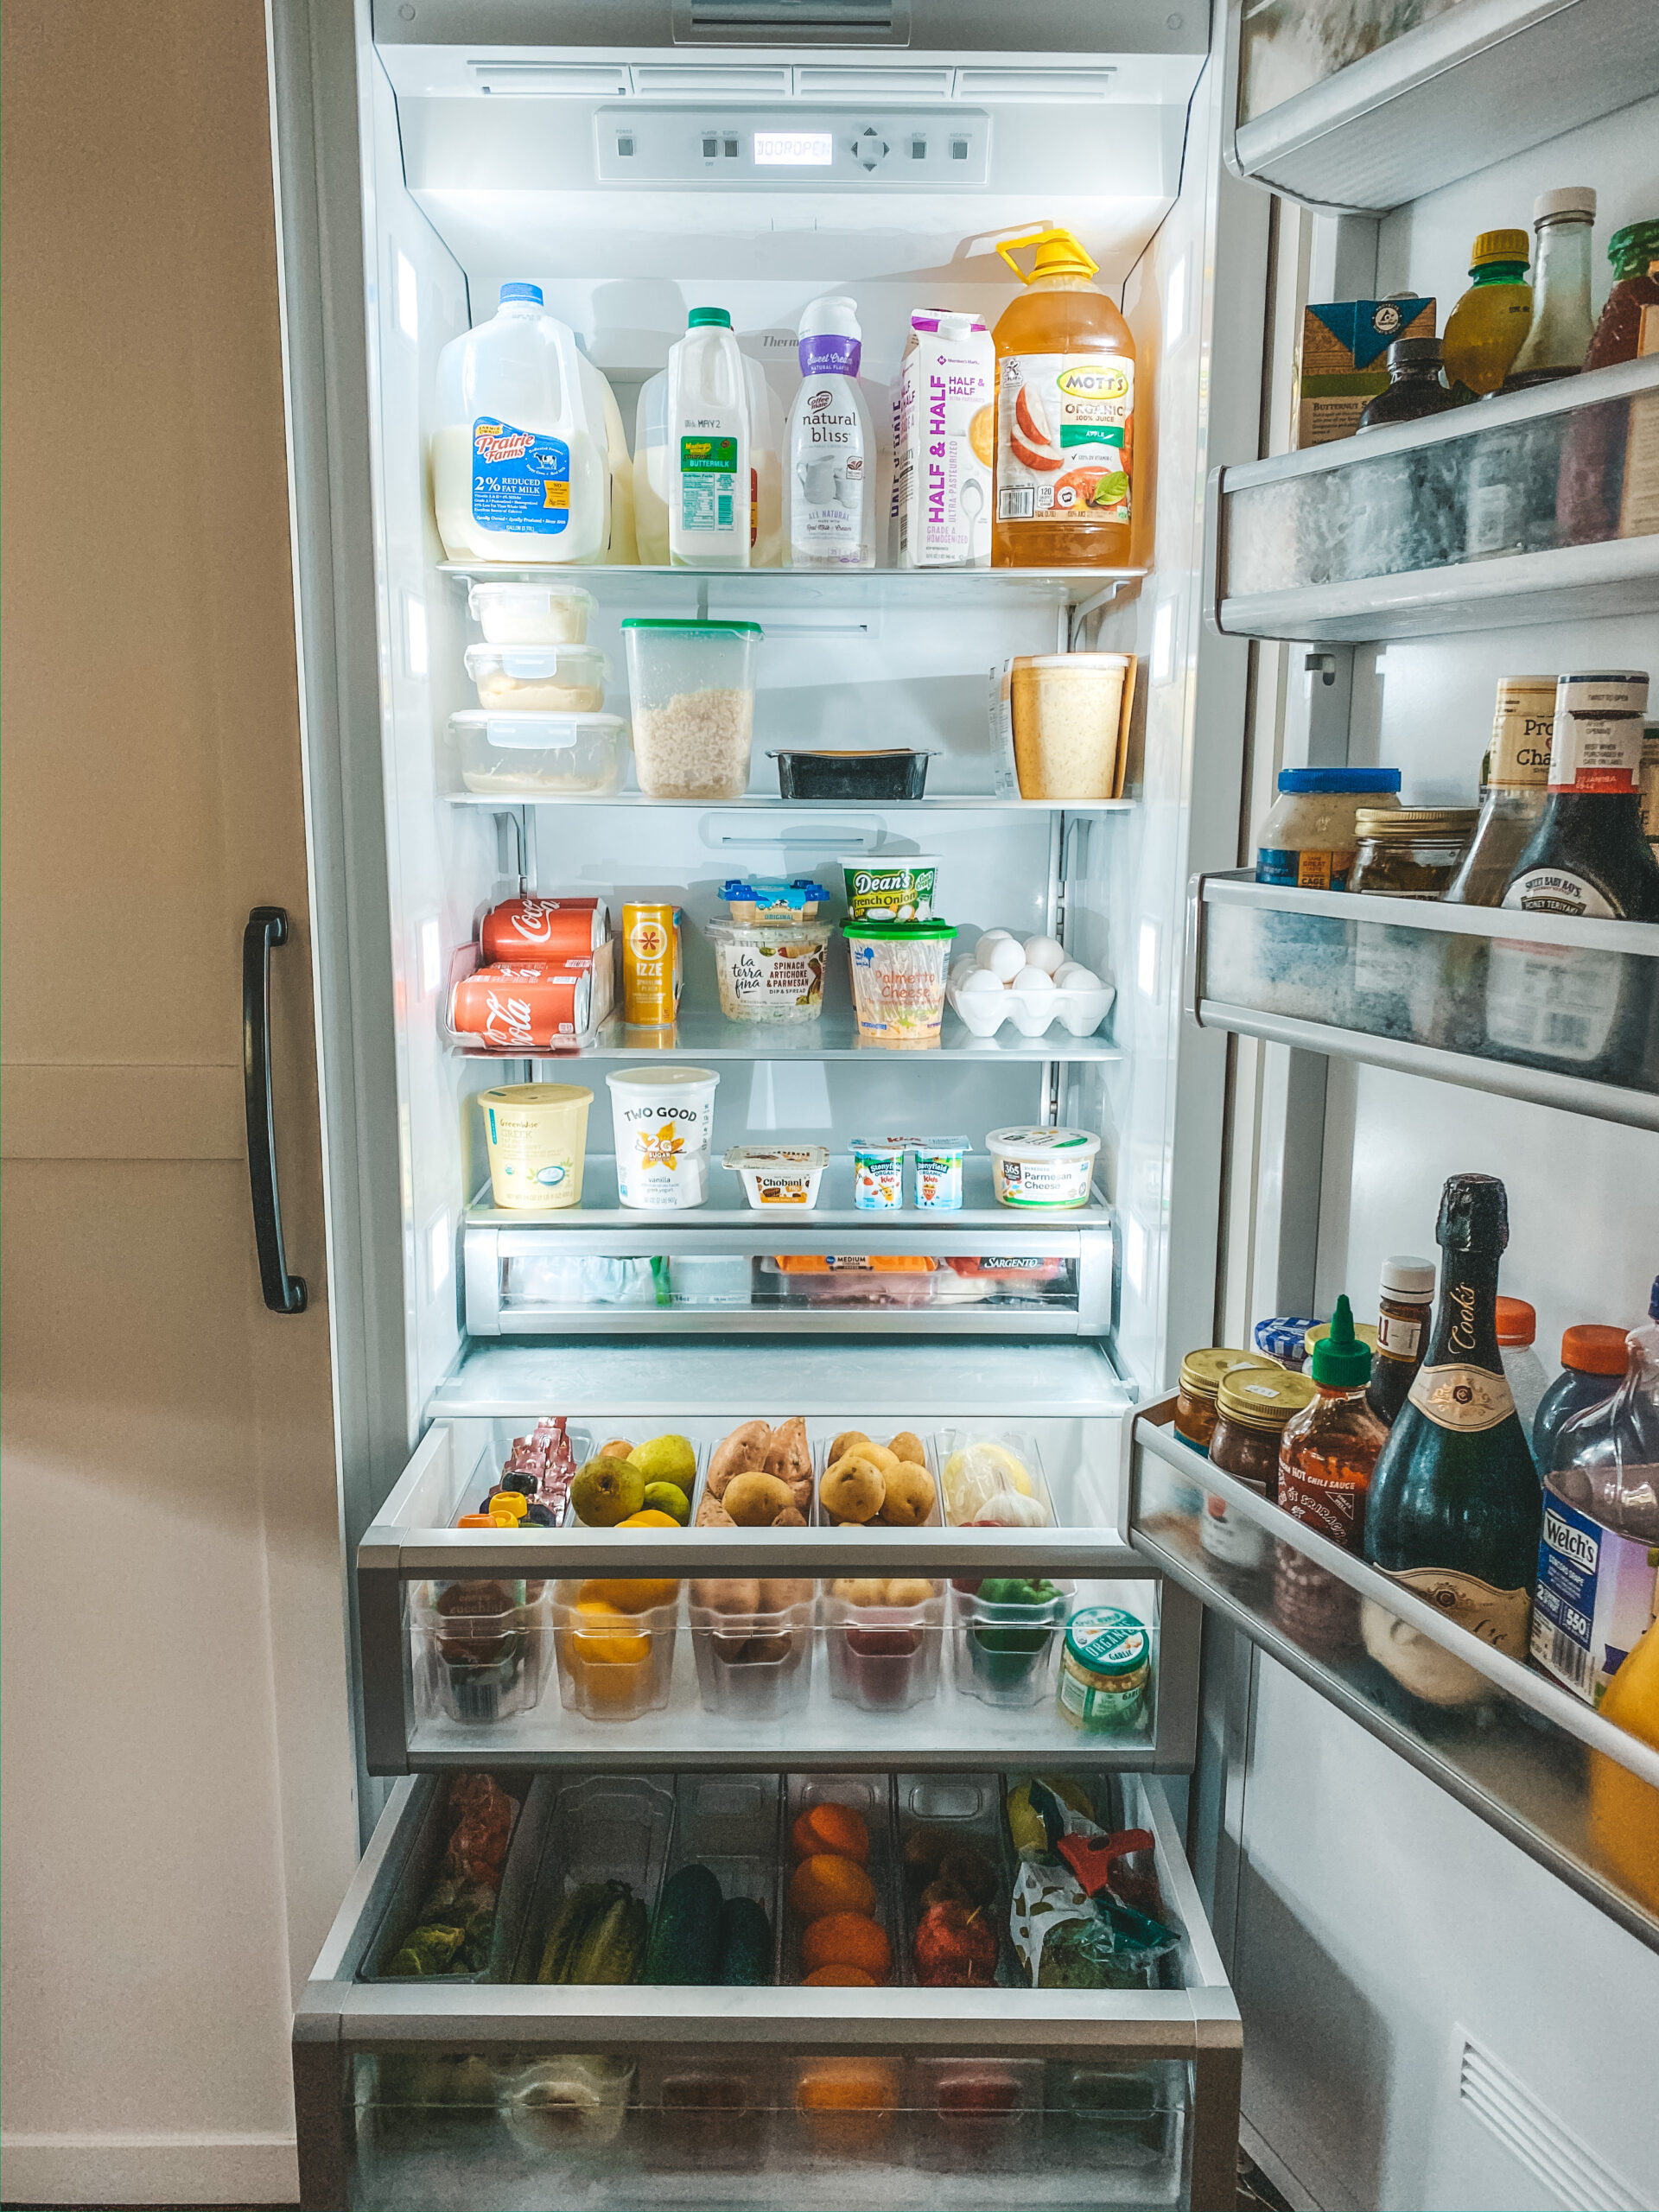 Spring Cleaning: Fridge Deep Clean + Organize